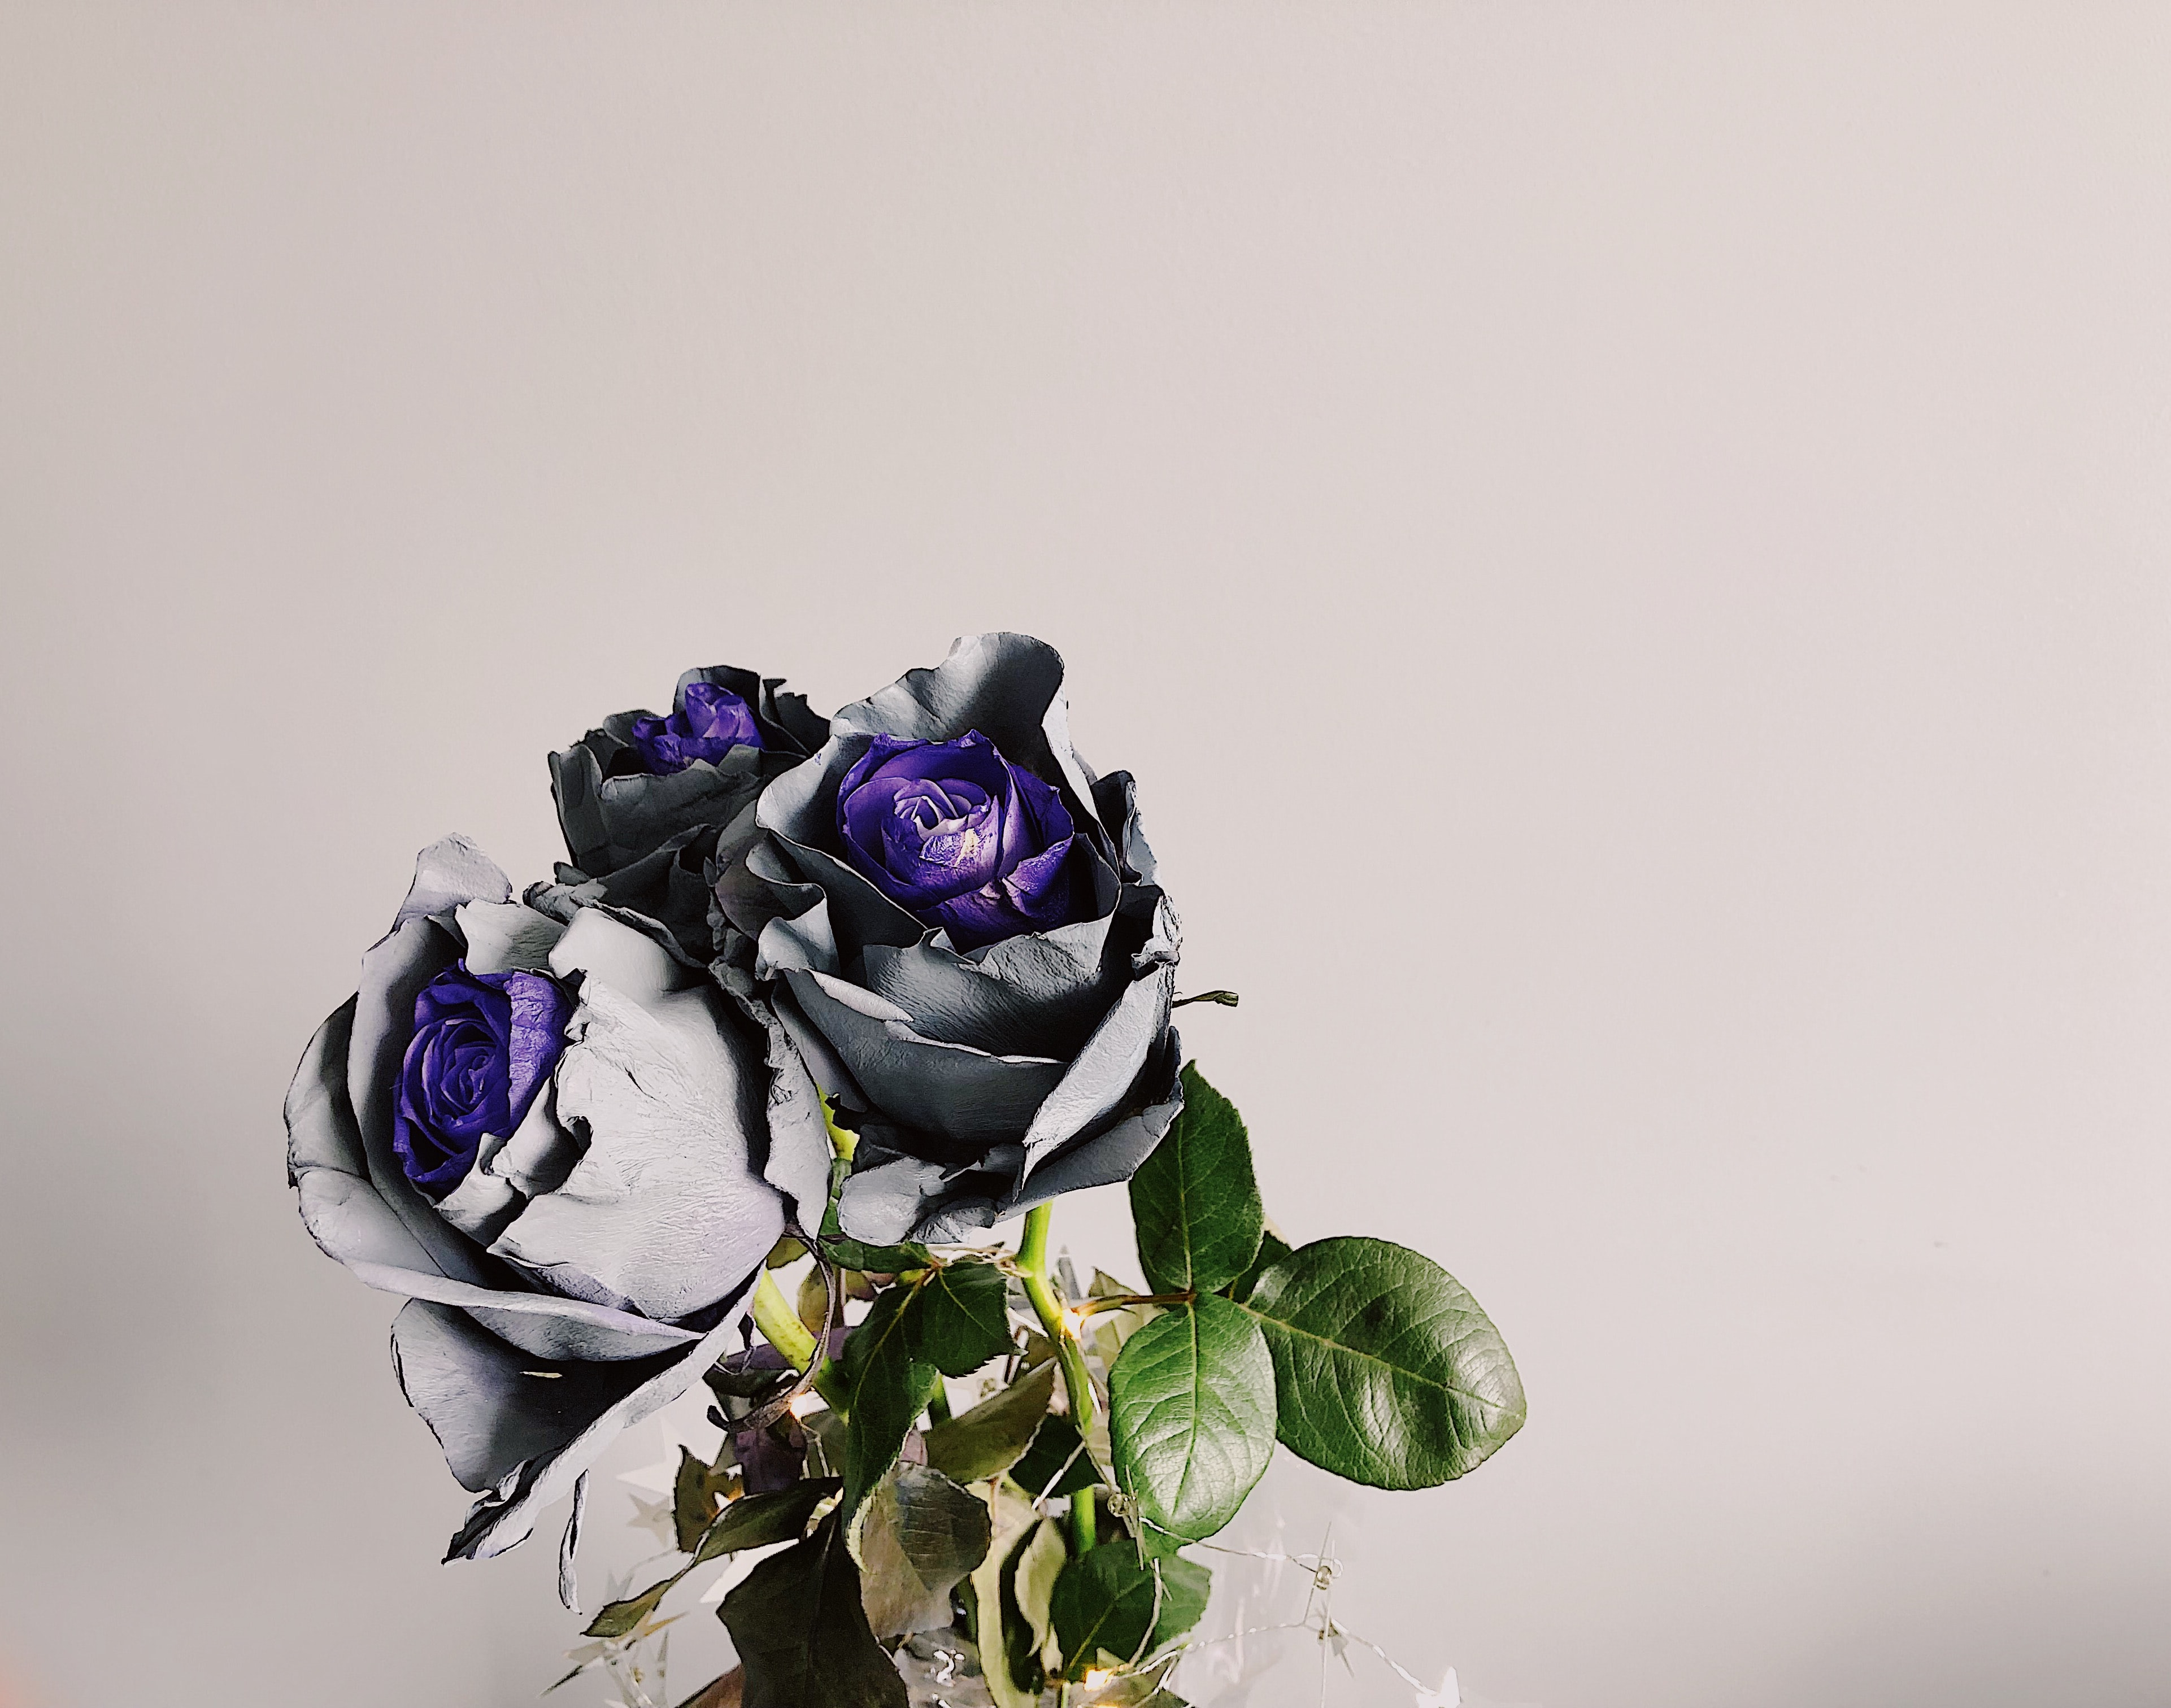 purple-and-gray rose flowers with green leaves